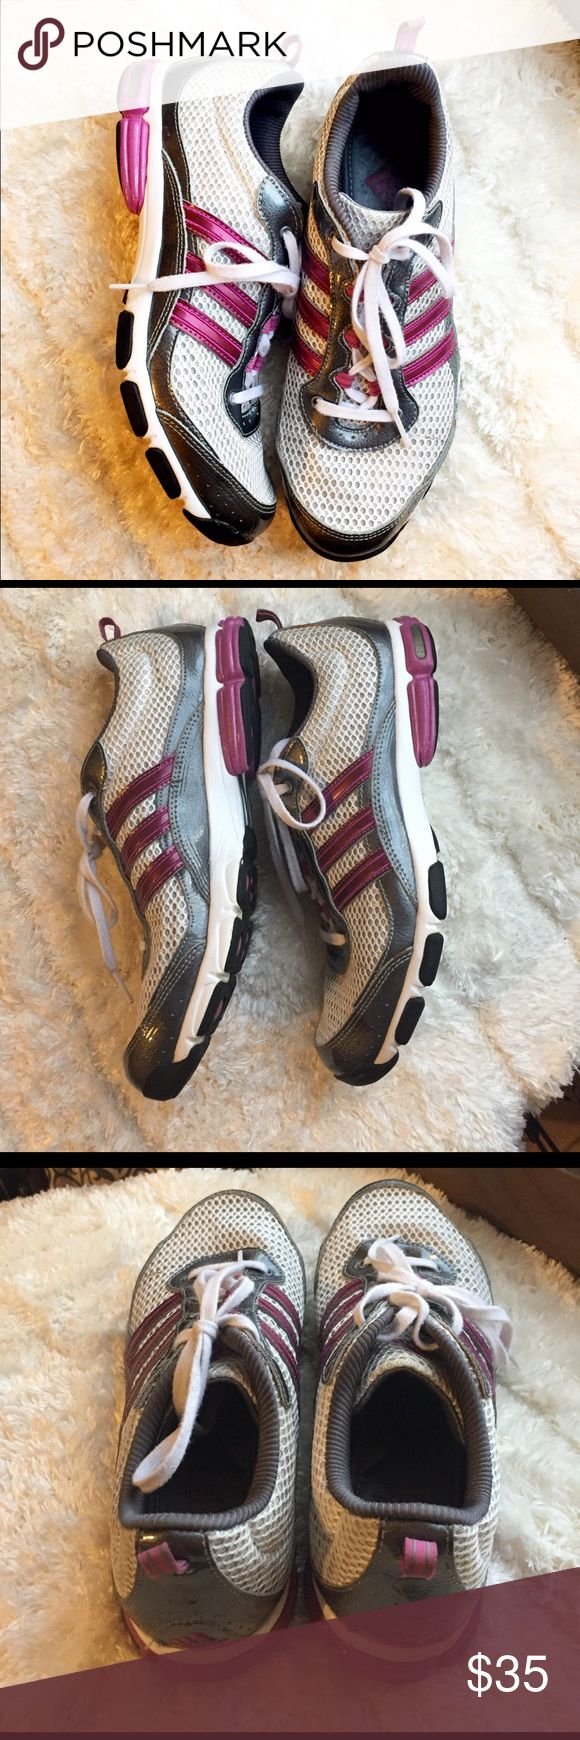 Like New Adidas Running Shoes Very gently used condition, wear includes subtle discoloration on right tongue and small scuff at right toe. Grey with purple detailing. True size 7. Fit foam soft comfort insoles and torsion support system. Adidas Shoes Athletic Shoes